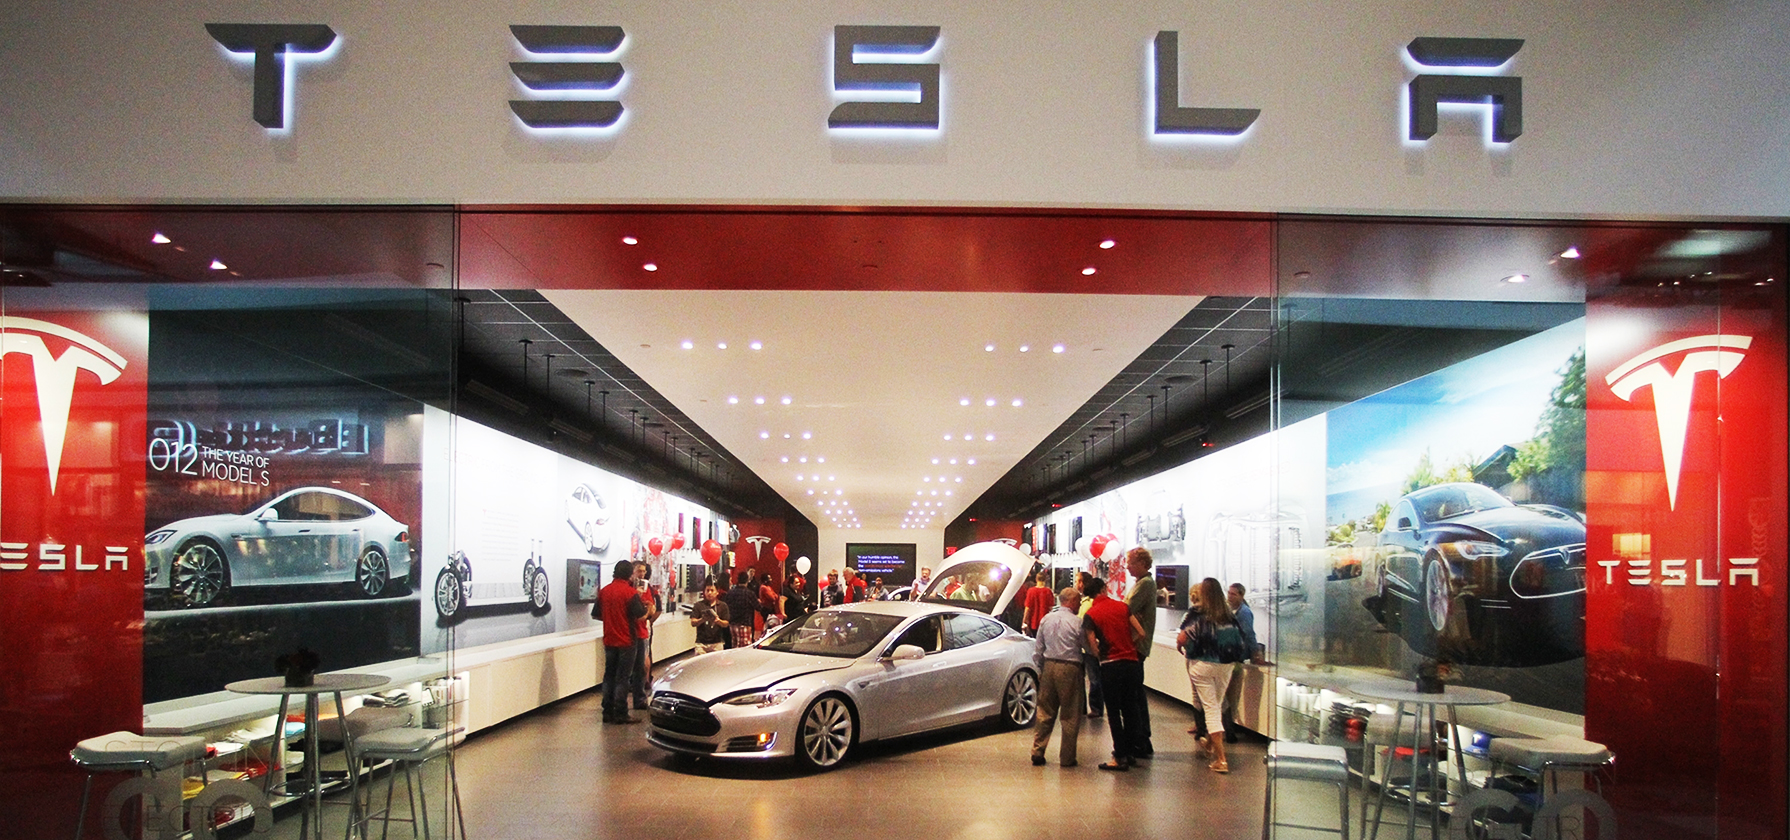 "Possible sites for Tesla salons in Moscow include the business center ""Vremena goda"" in the northeast and ""Atrium"" in the city center."